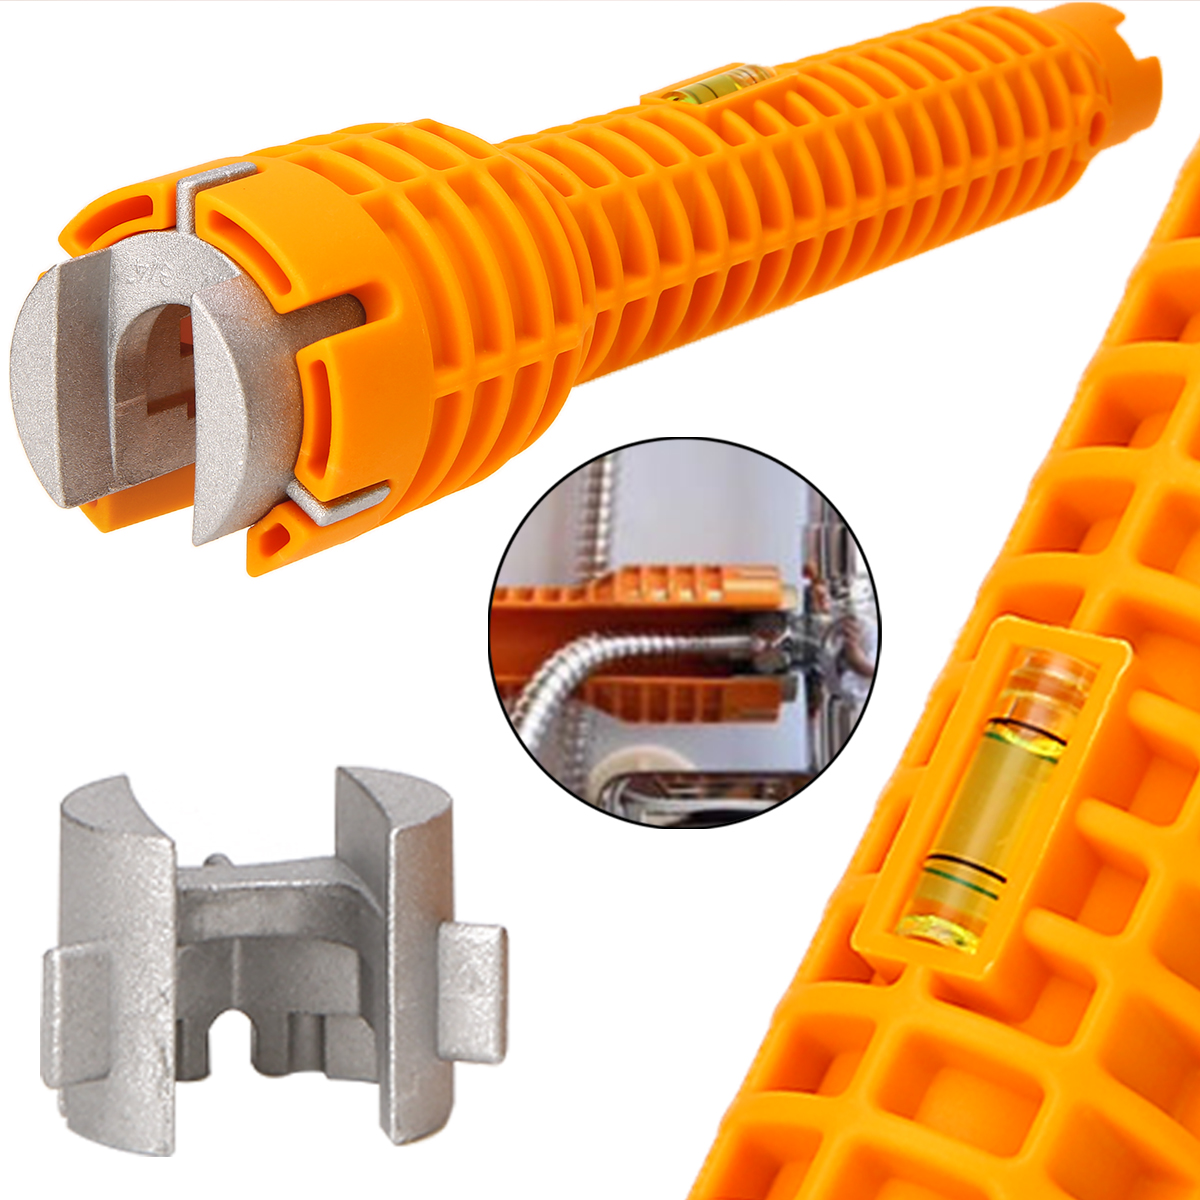 Faucet and Sink Installer Tool 27018